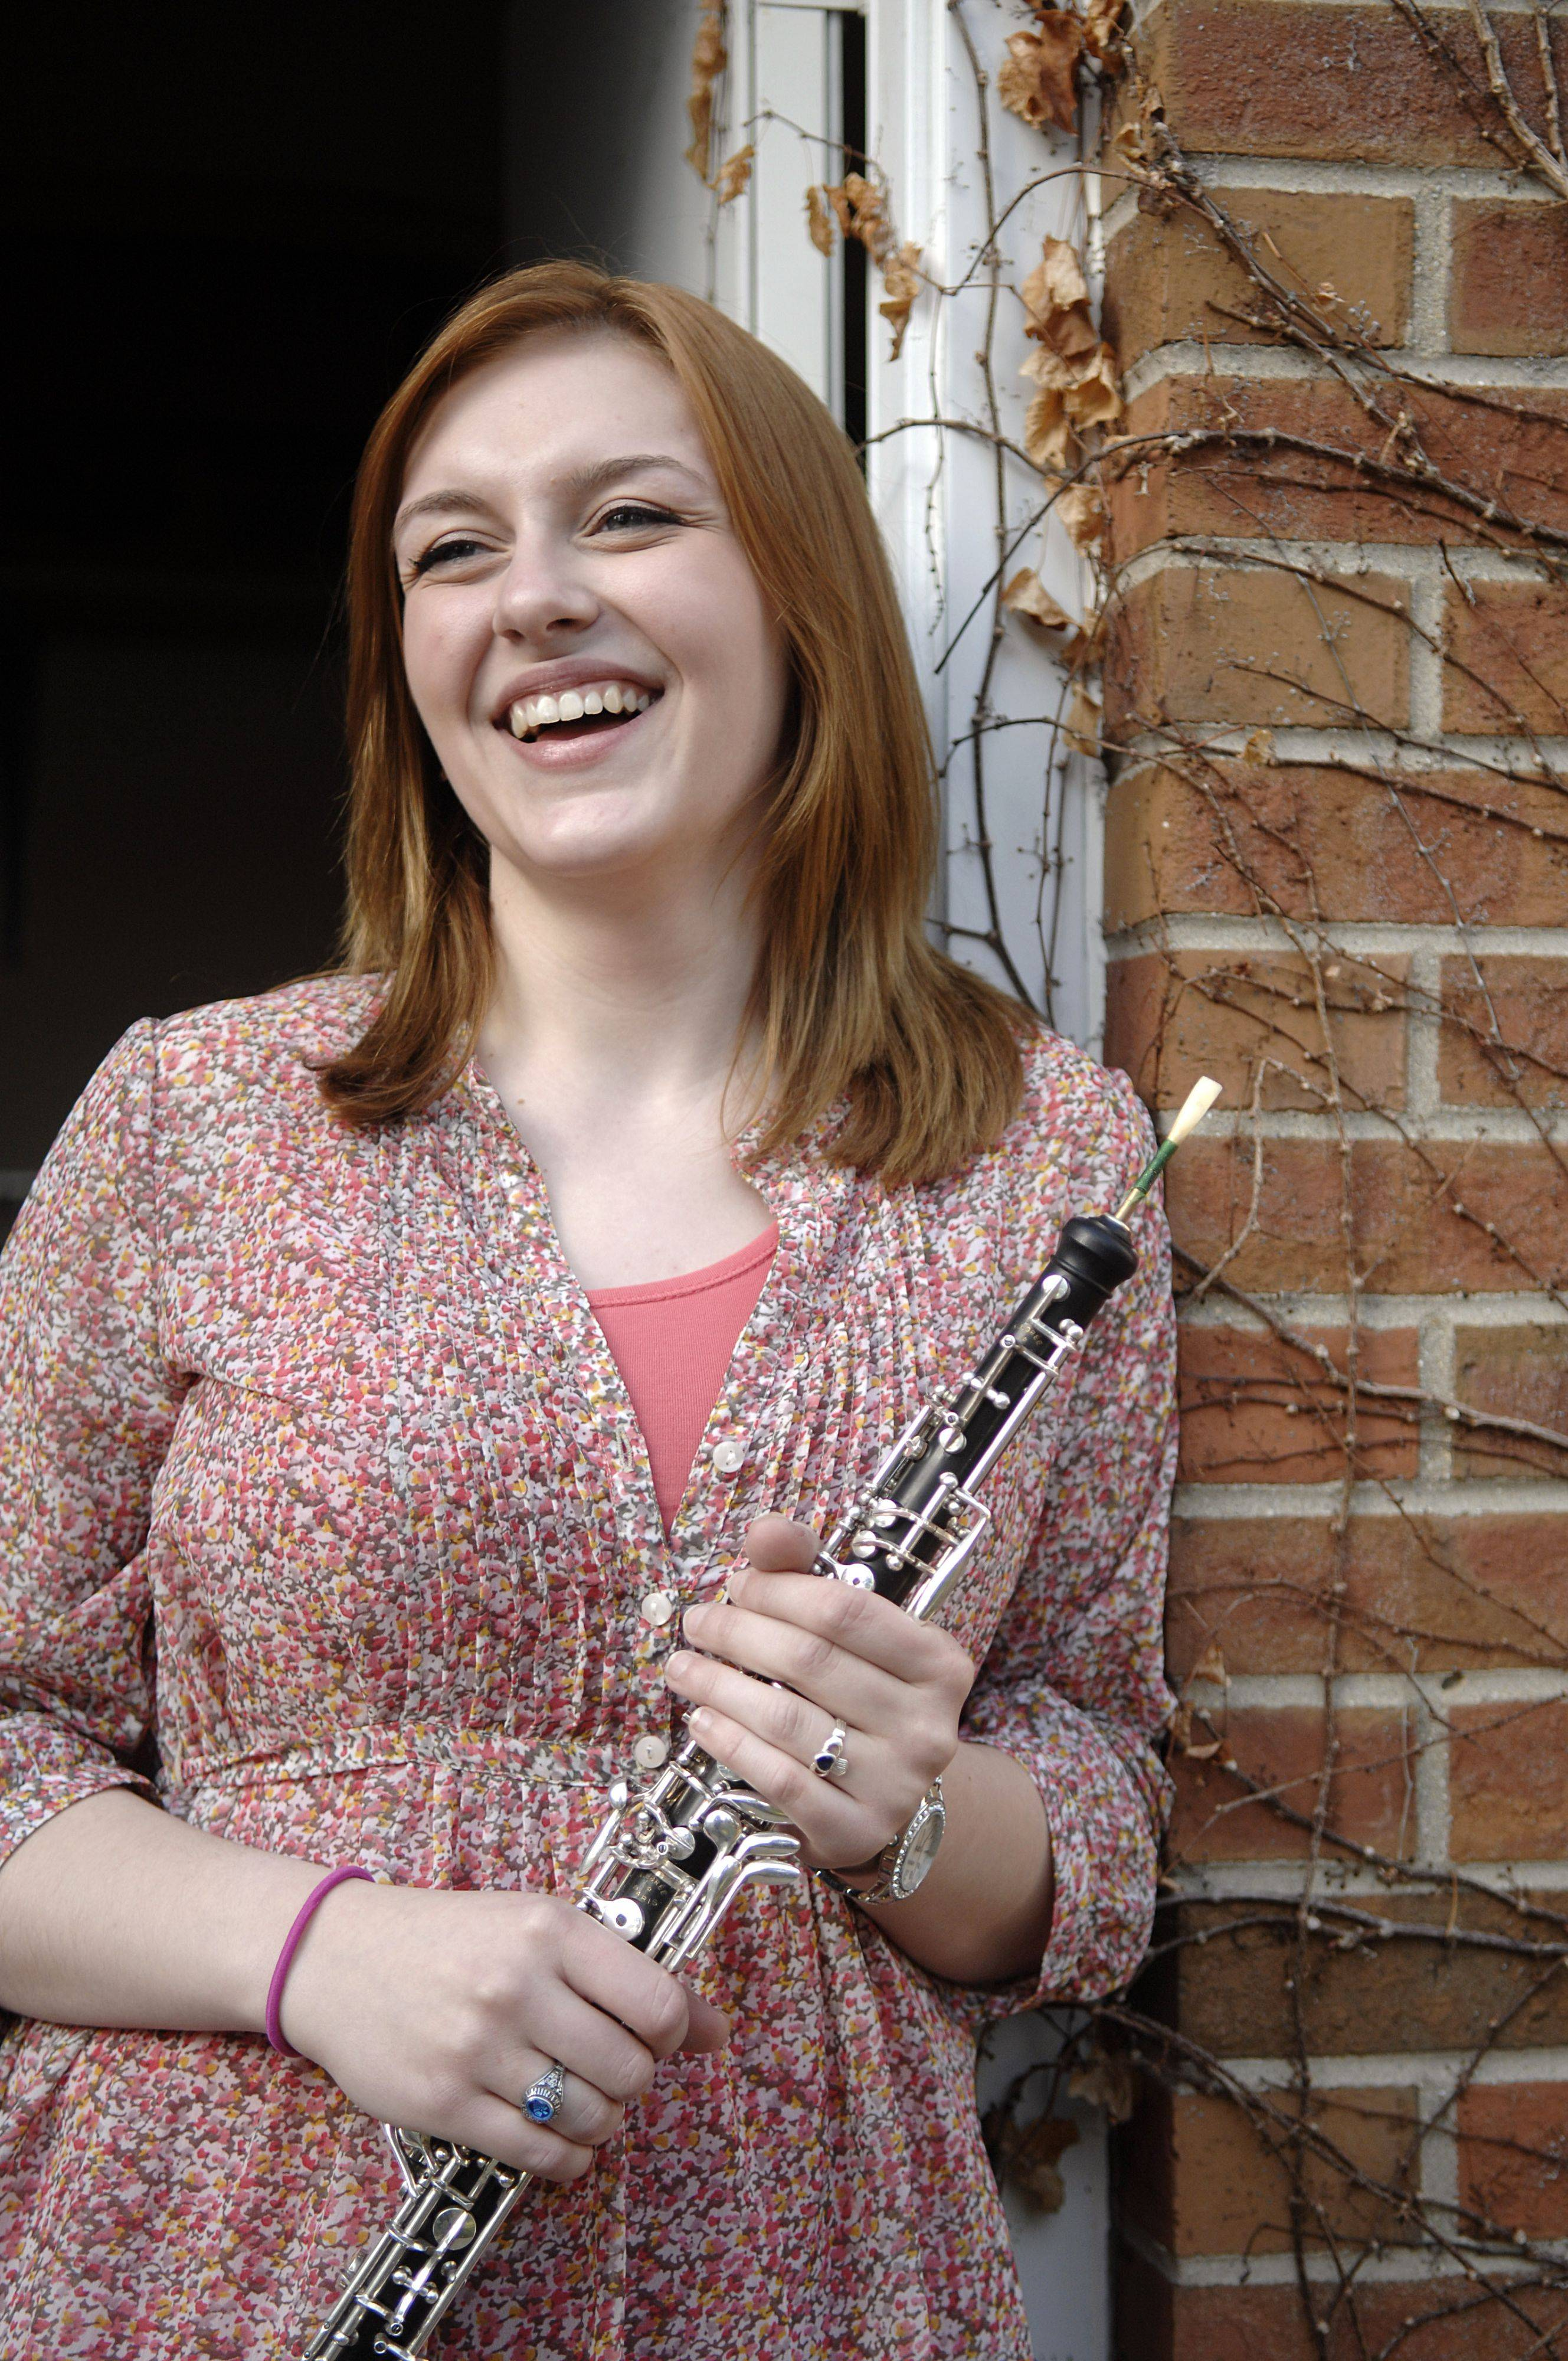 Emily Fagan of Aurora won the Elgin Youth Symphony Orchestra's Young Artists Concerto Competition, a remarkable feat considering all she's been through in the last few years.